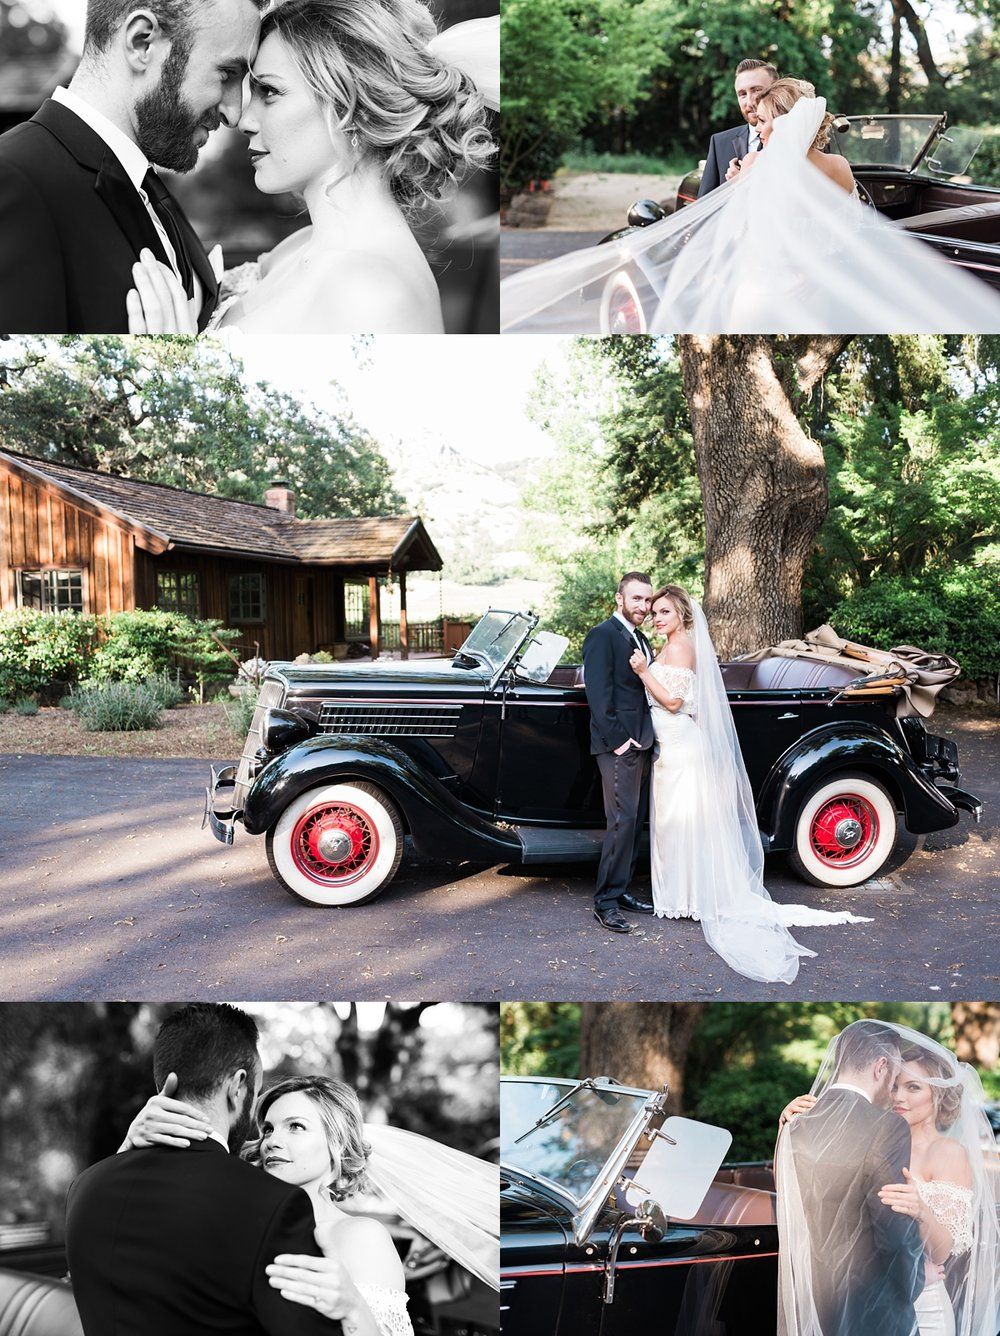 vintage-inspired-wedding-shoot, destination-wedding-photographer, denver-colorado-wedding-photographer